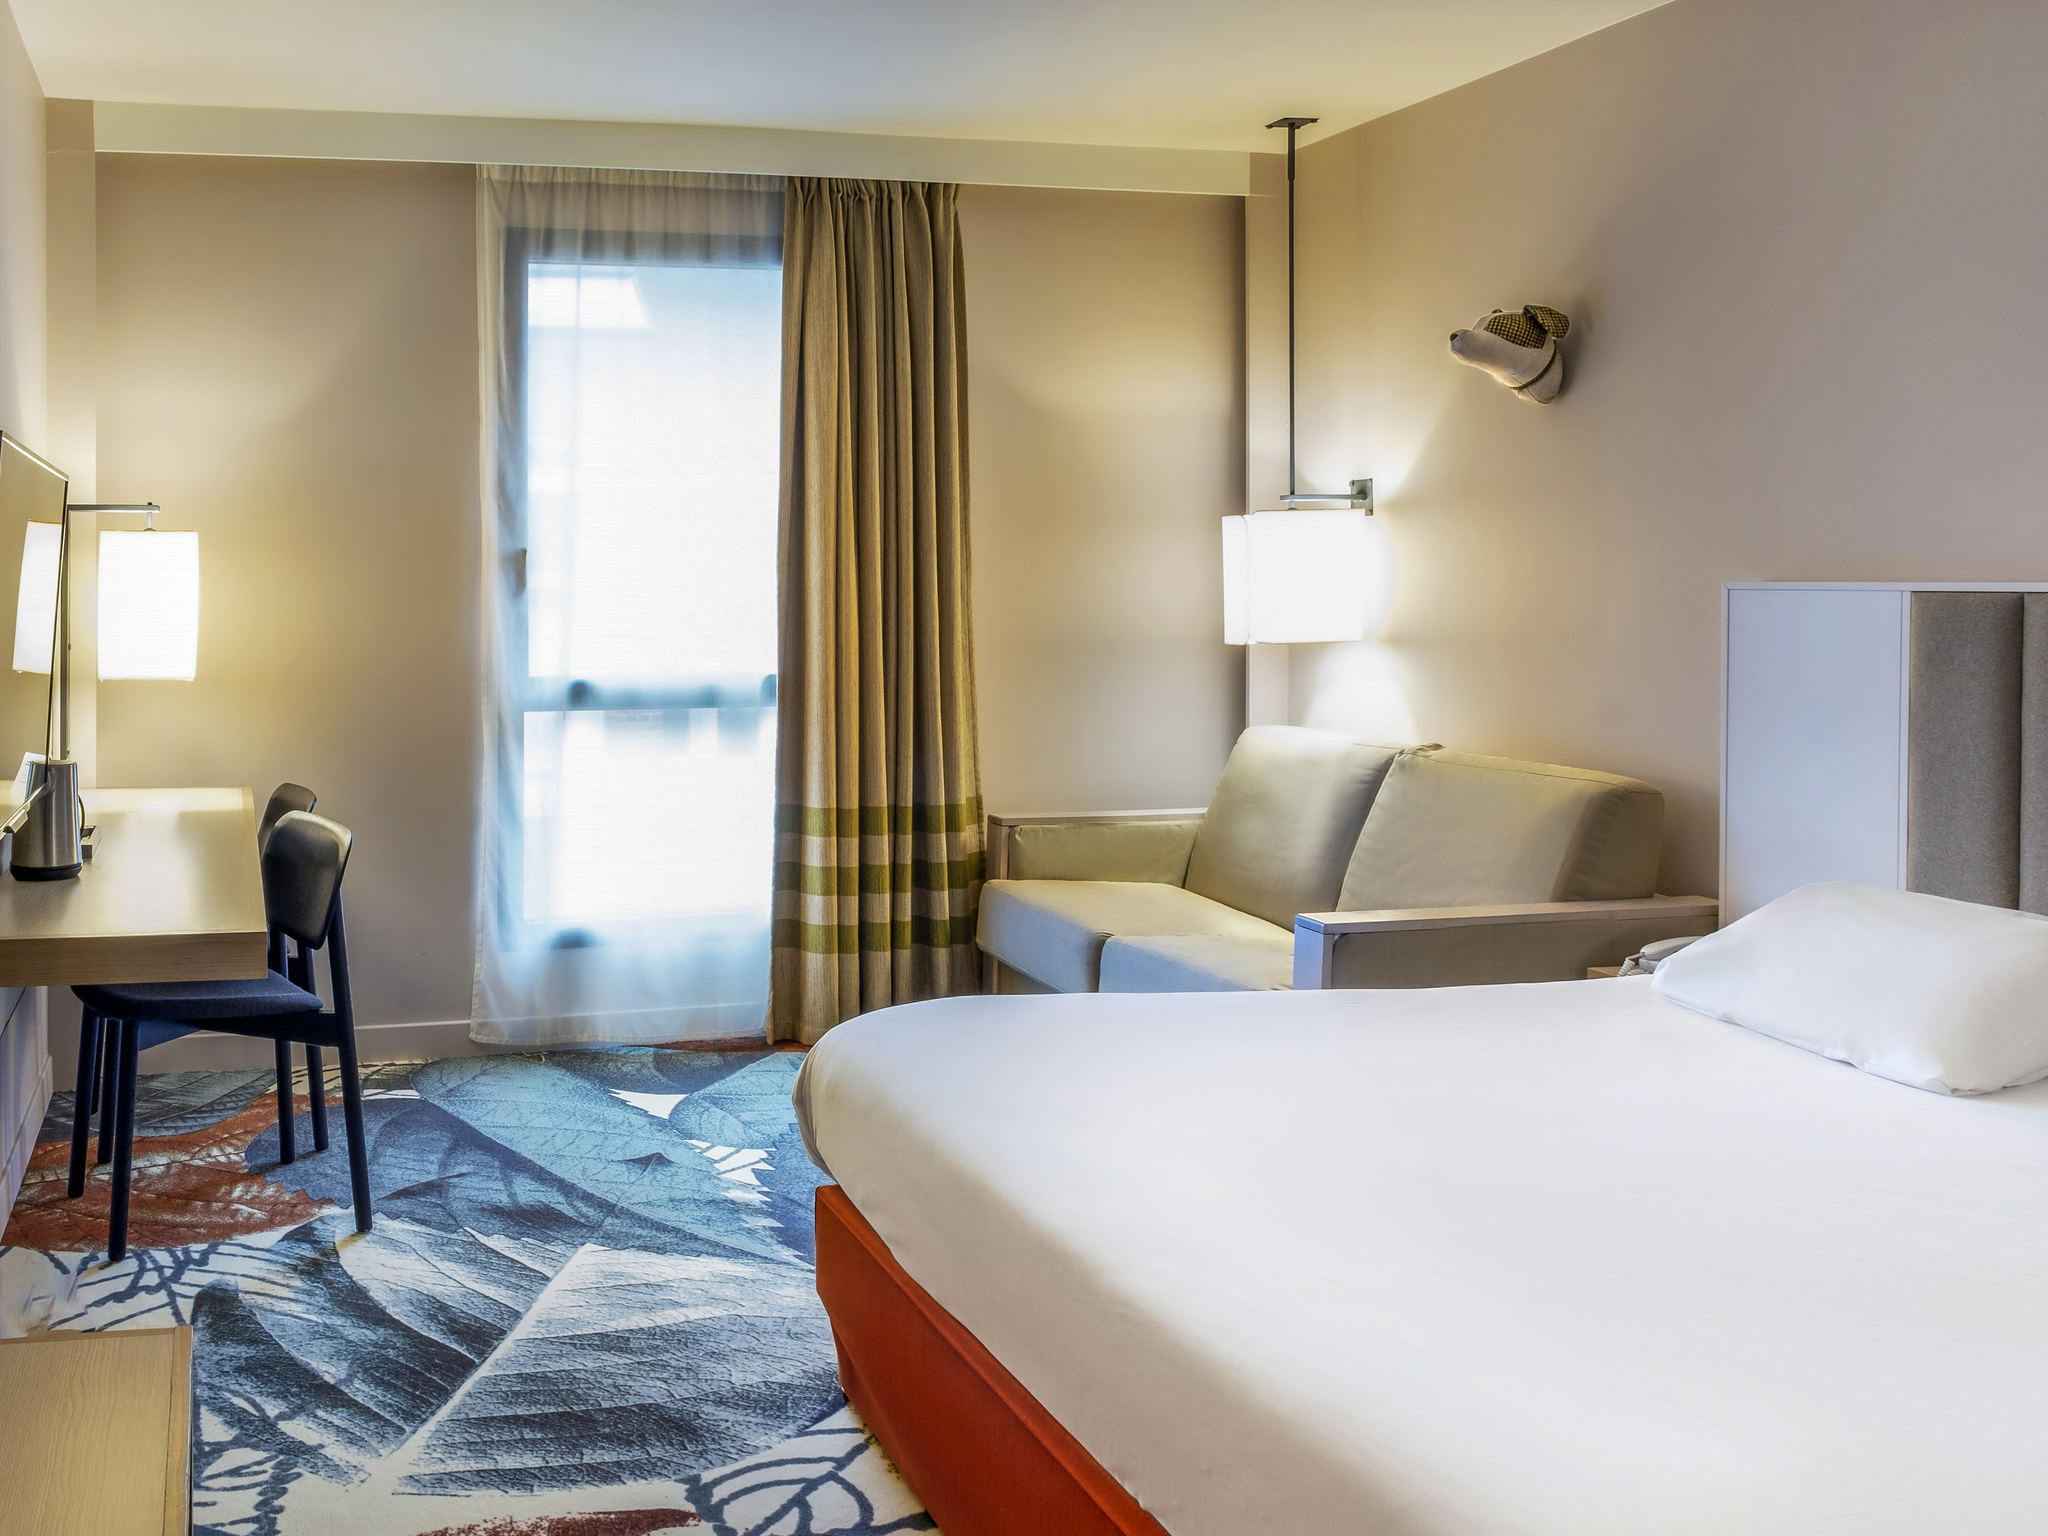 Hotel – Hotel Mercure Amiens Cathedrale